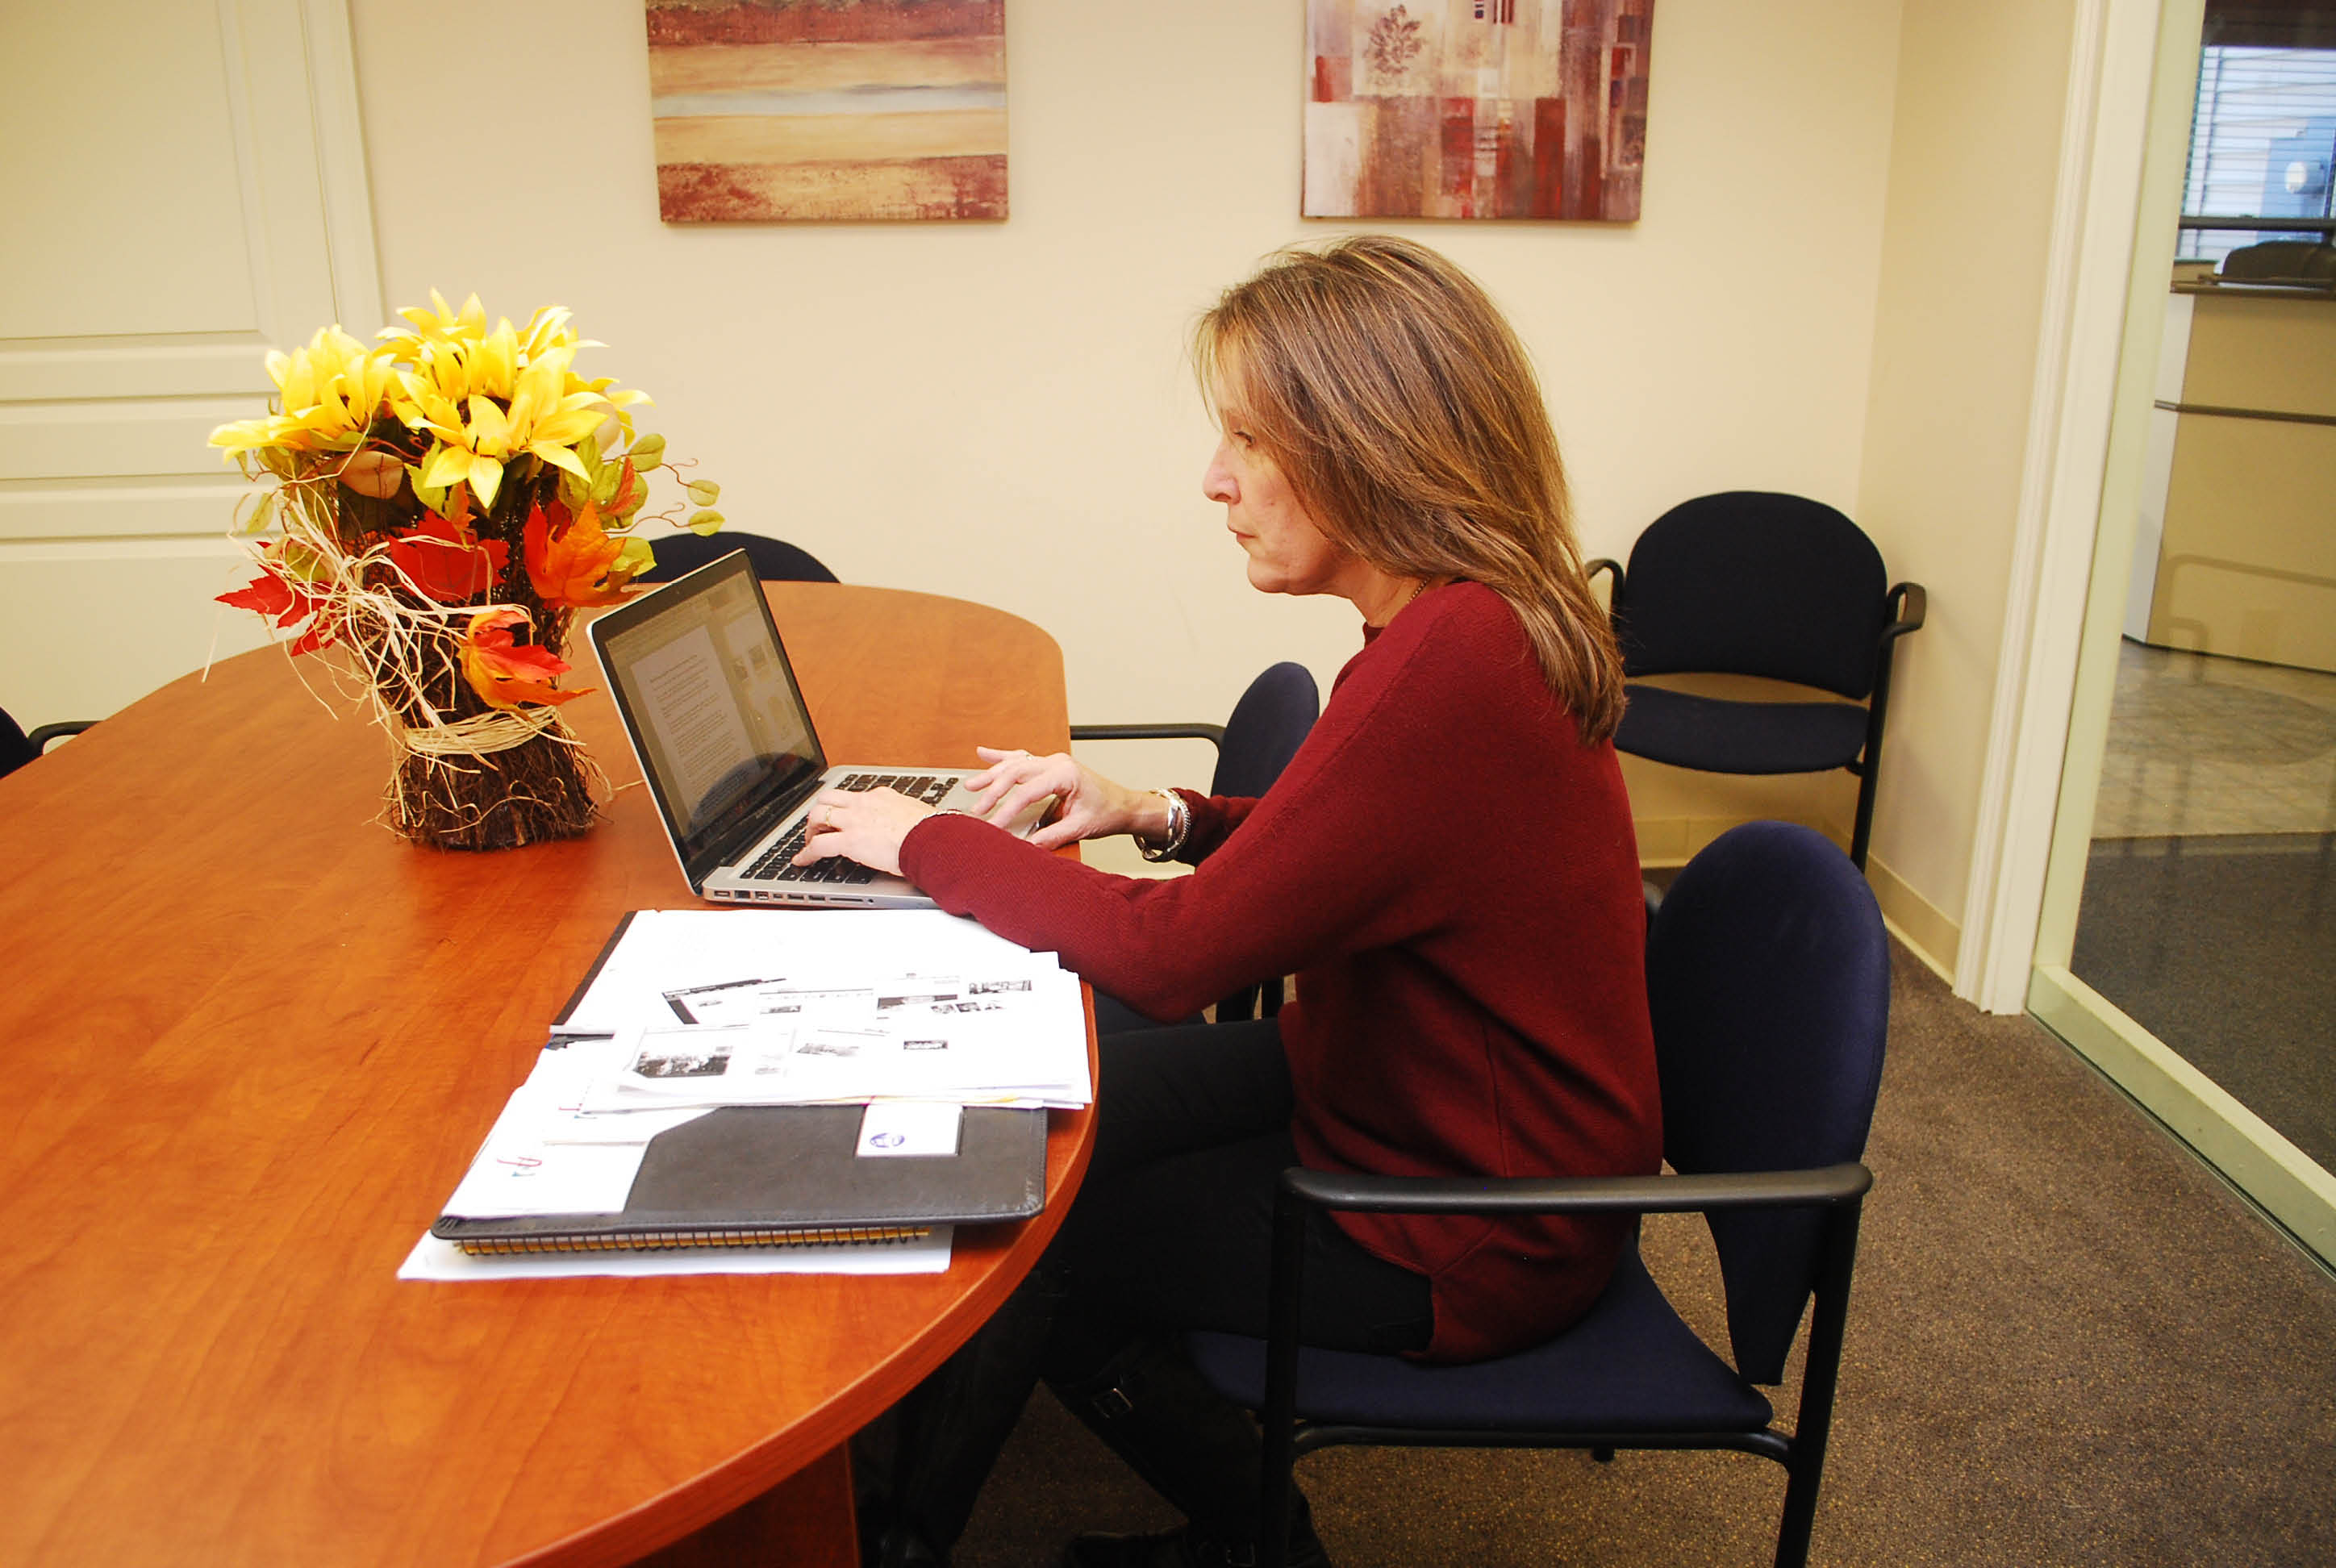 Conference rooms for virtual interactions near Pawling, NY